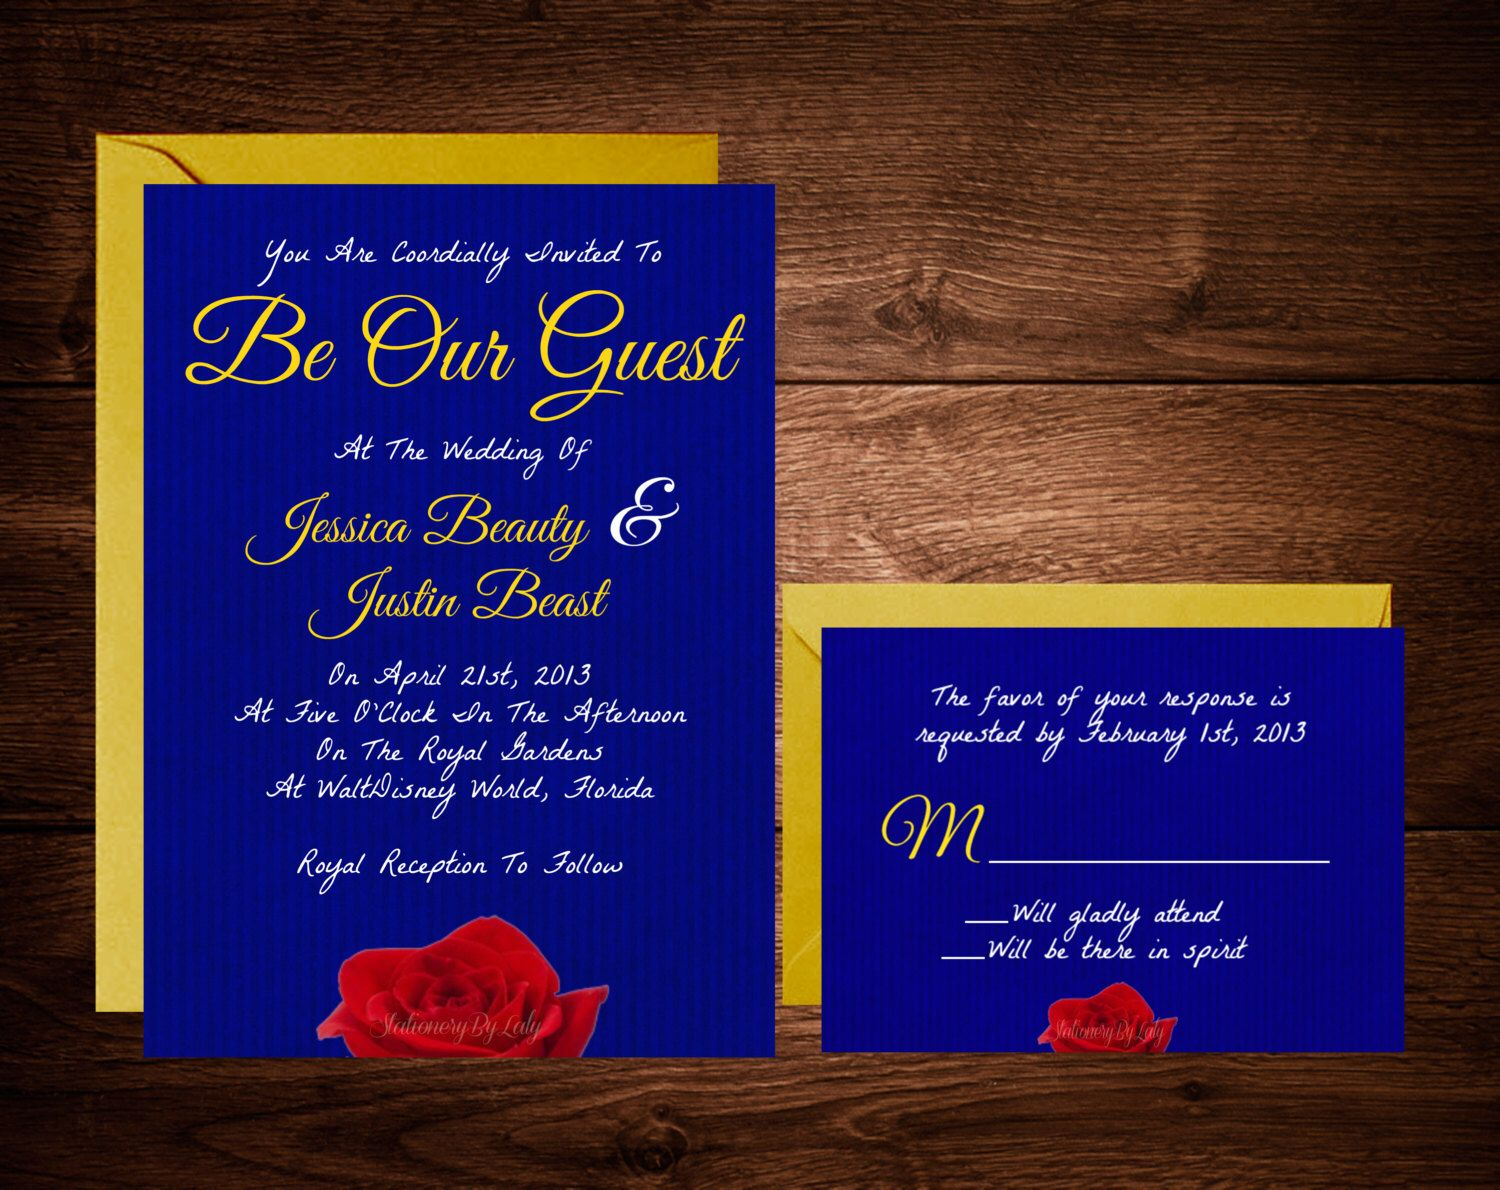 Beauty and the beast wedding invitations fairytale for Beauty and the beast wedding invitation template free